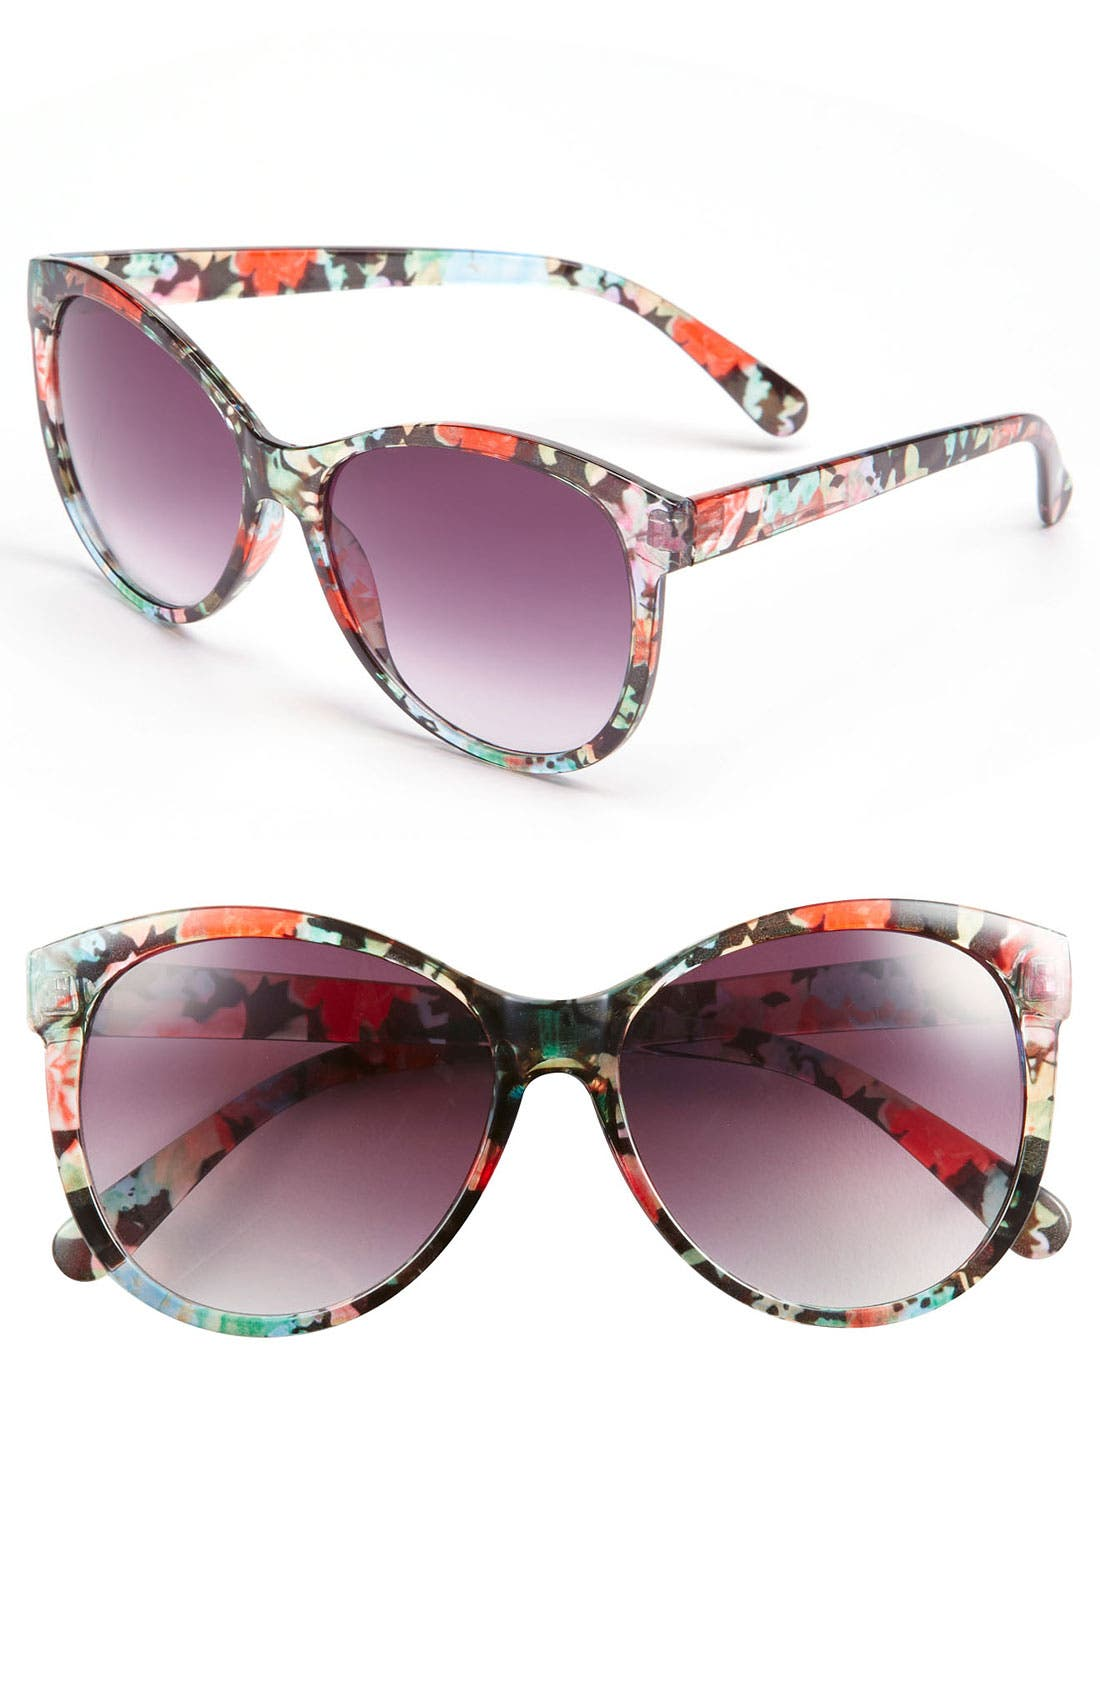 Alternate Image 1 Selected - FE NY 'Endless Summer' Sunglasses